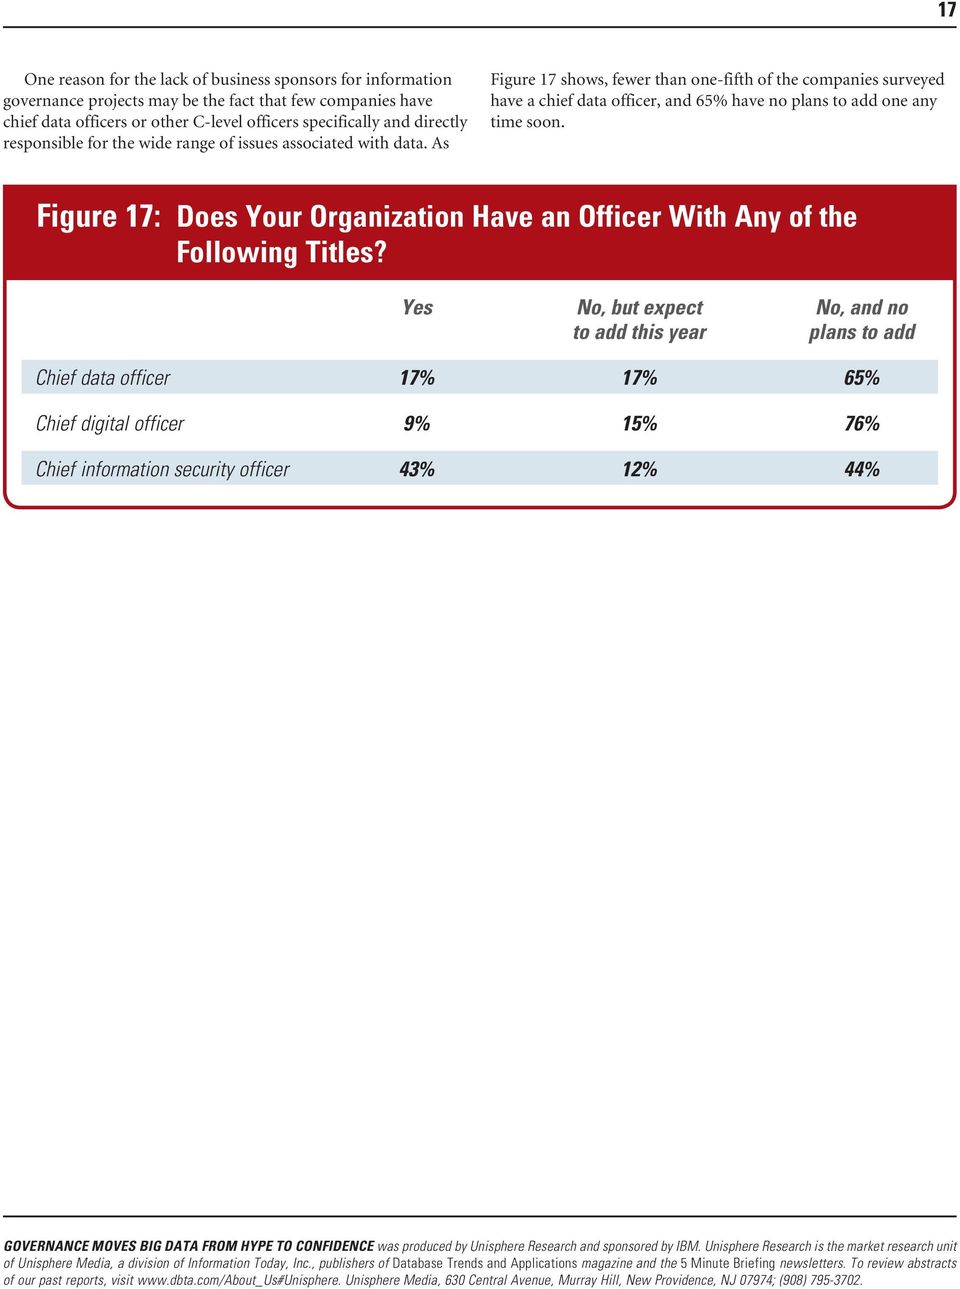 As Figure 17 shows, fewer than one-fifth of the companies surveyed have a chief data officer, and 65% have no plans to add one any time soon.